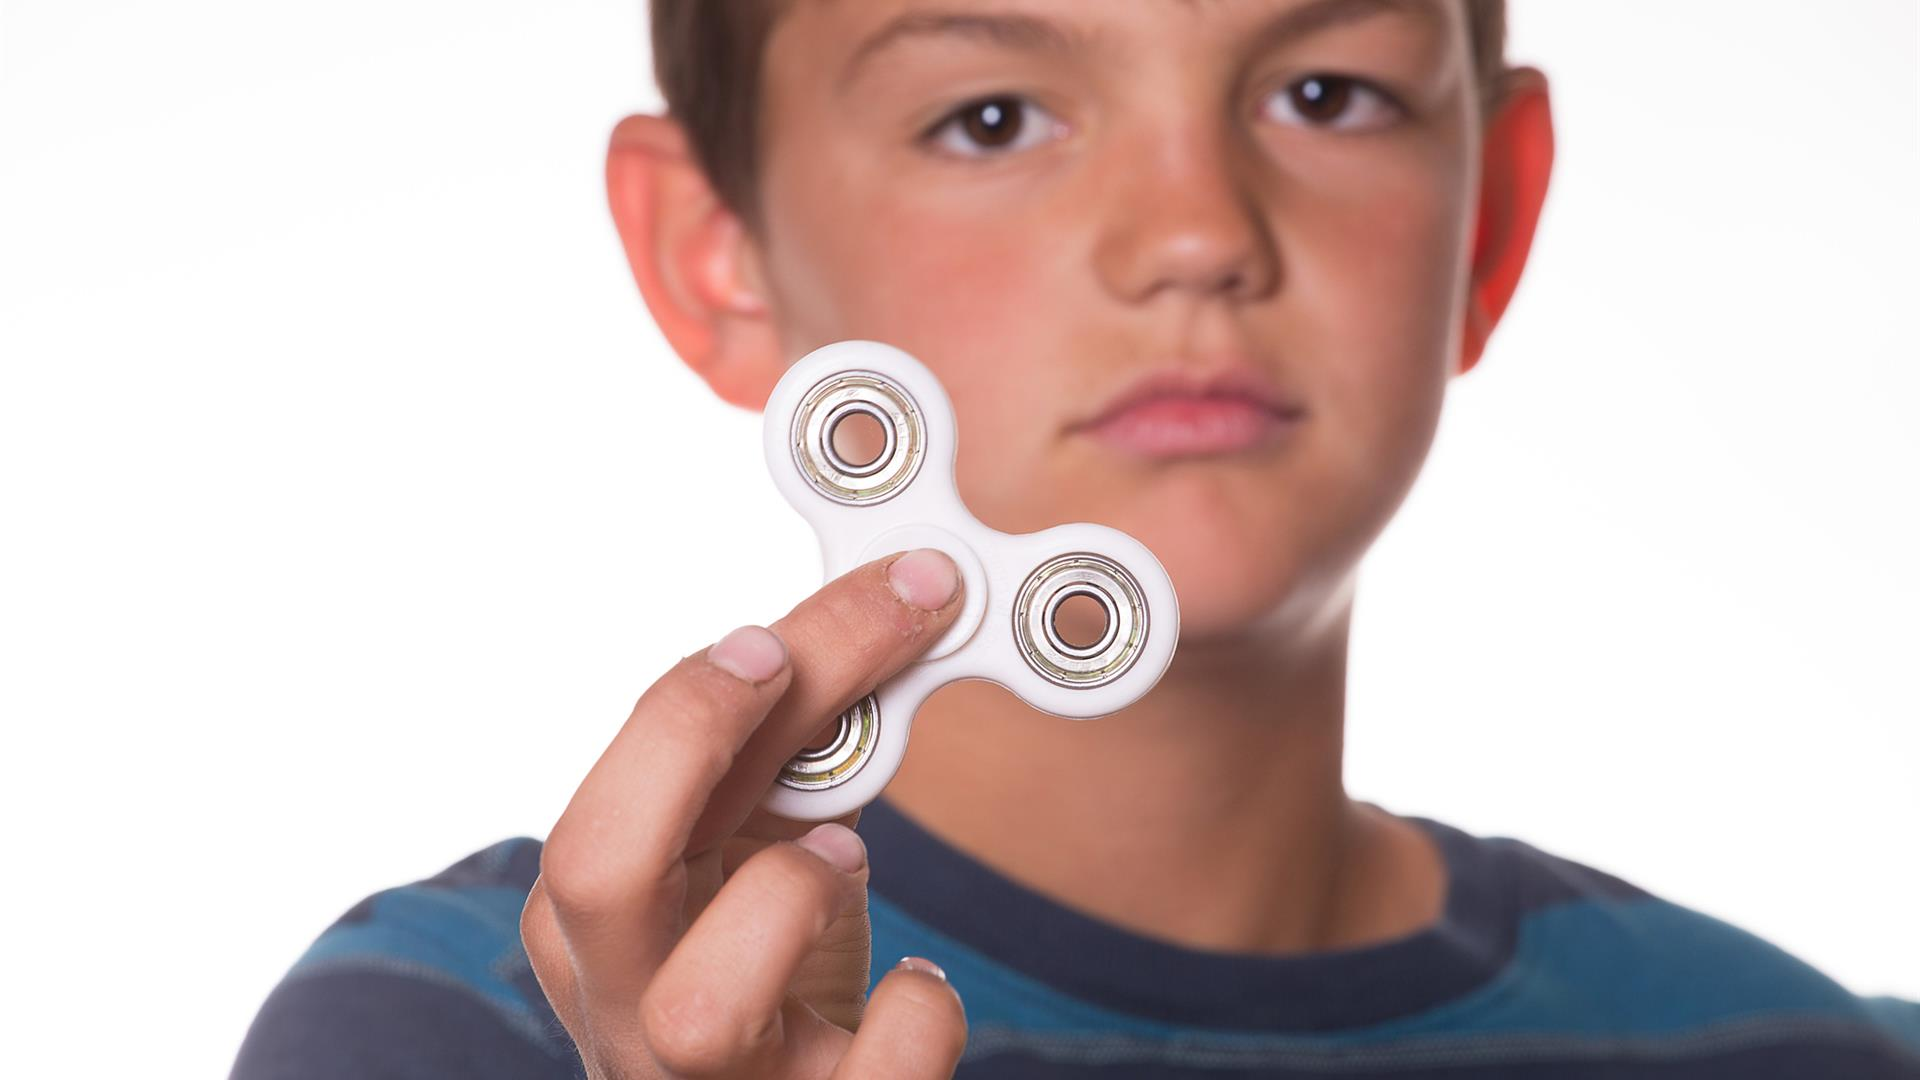 Fidget Spinner Thinkstock Photos 684848590